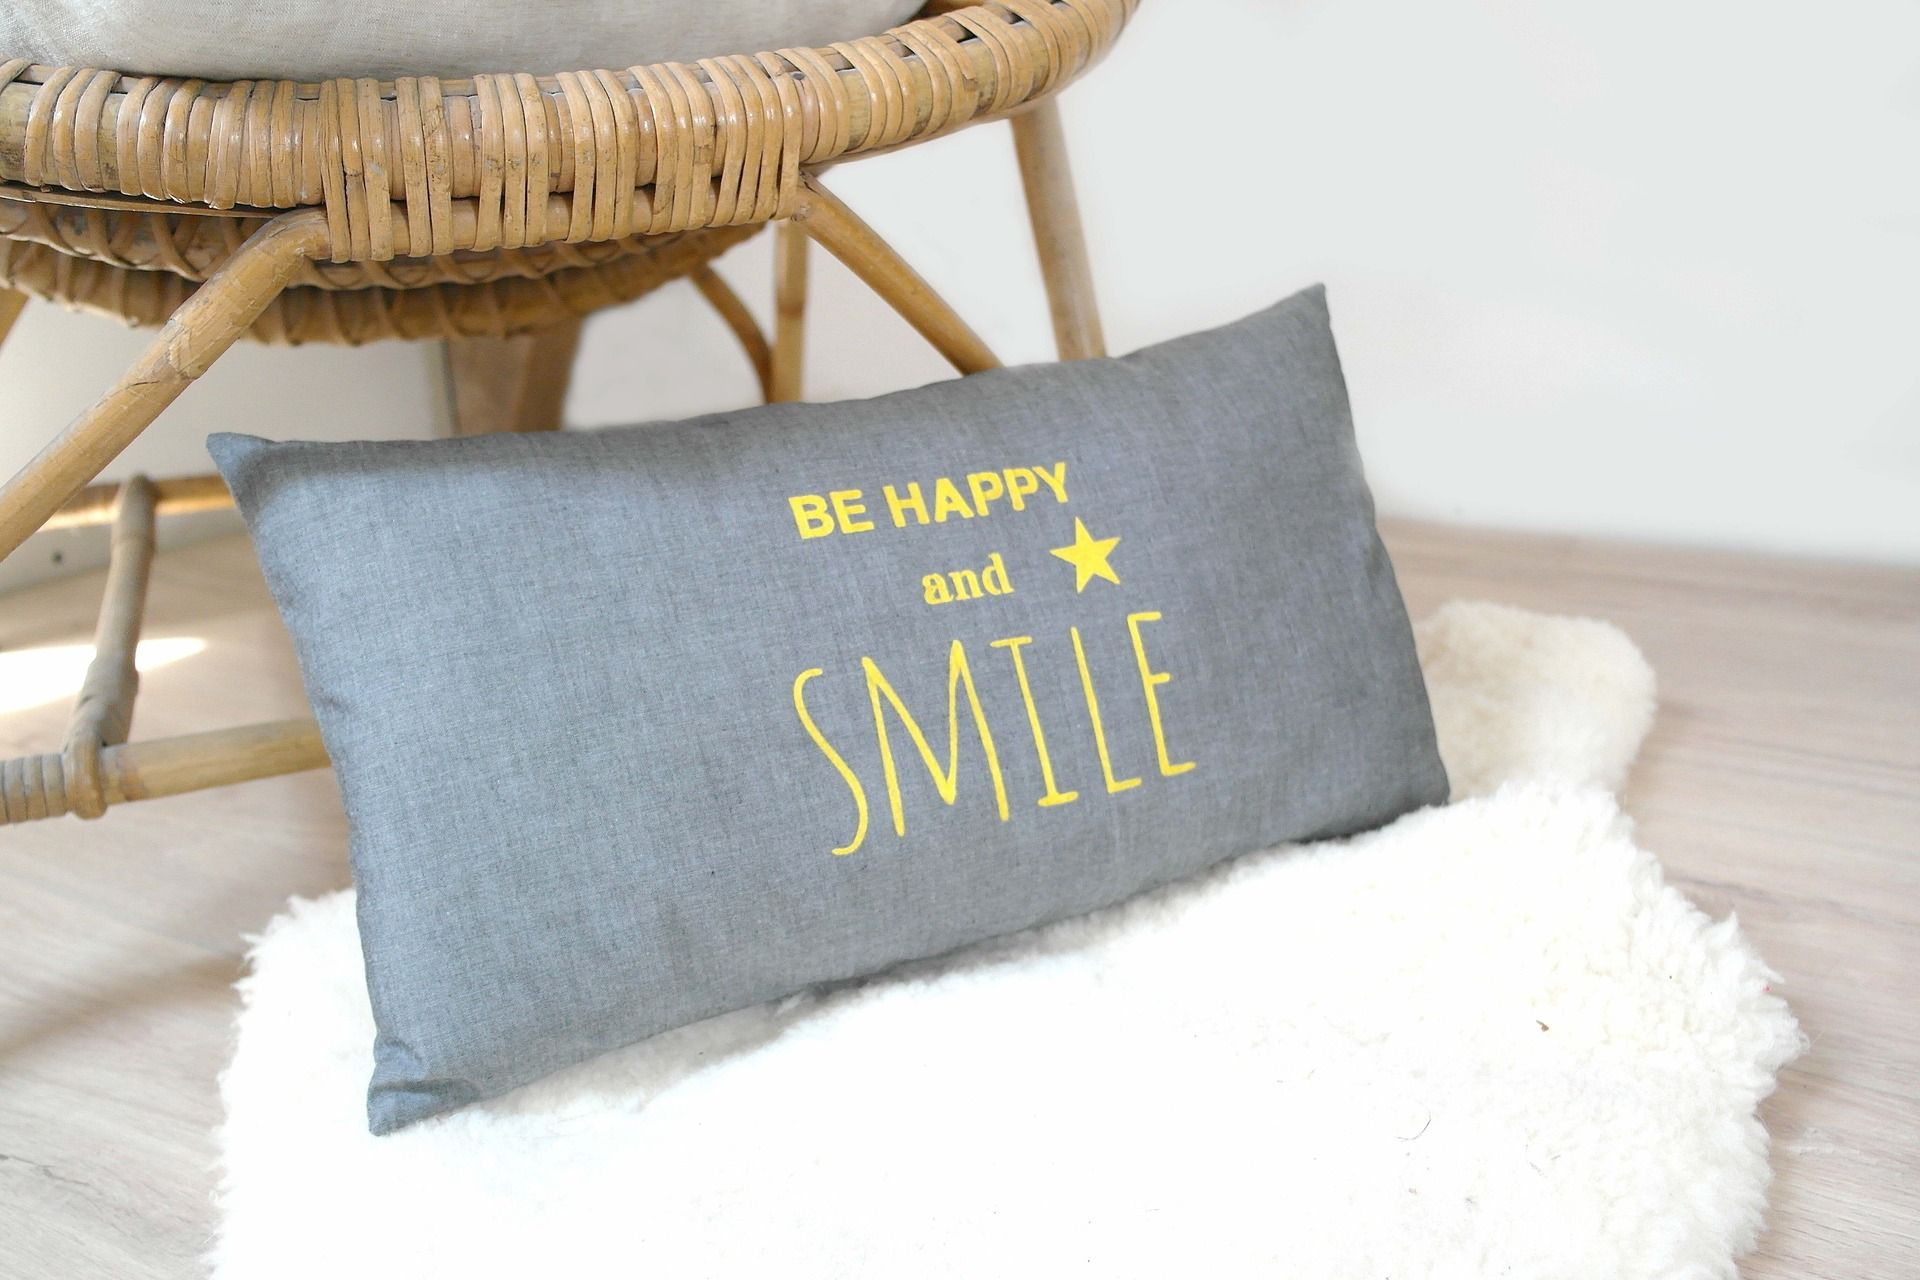 coussin typographie be happy and smile de couleur bleu gris avec inscription jaune textiles. Black Bedroom Furniture Sets. Home Design Ideas